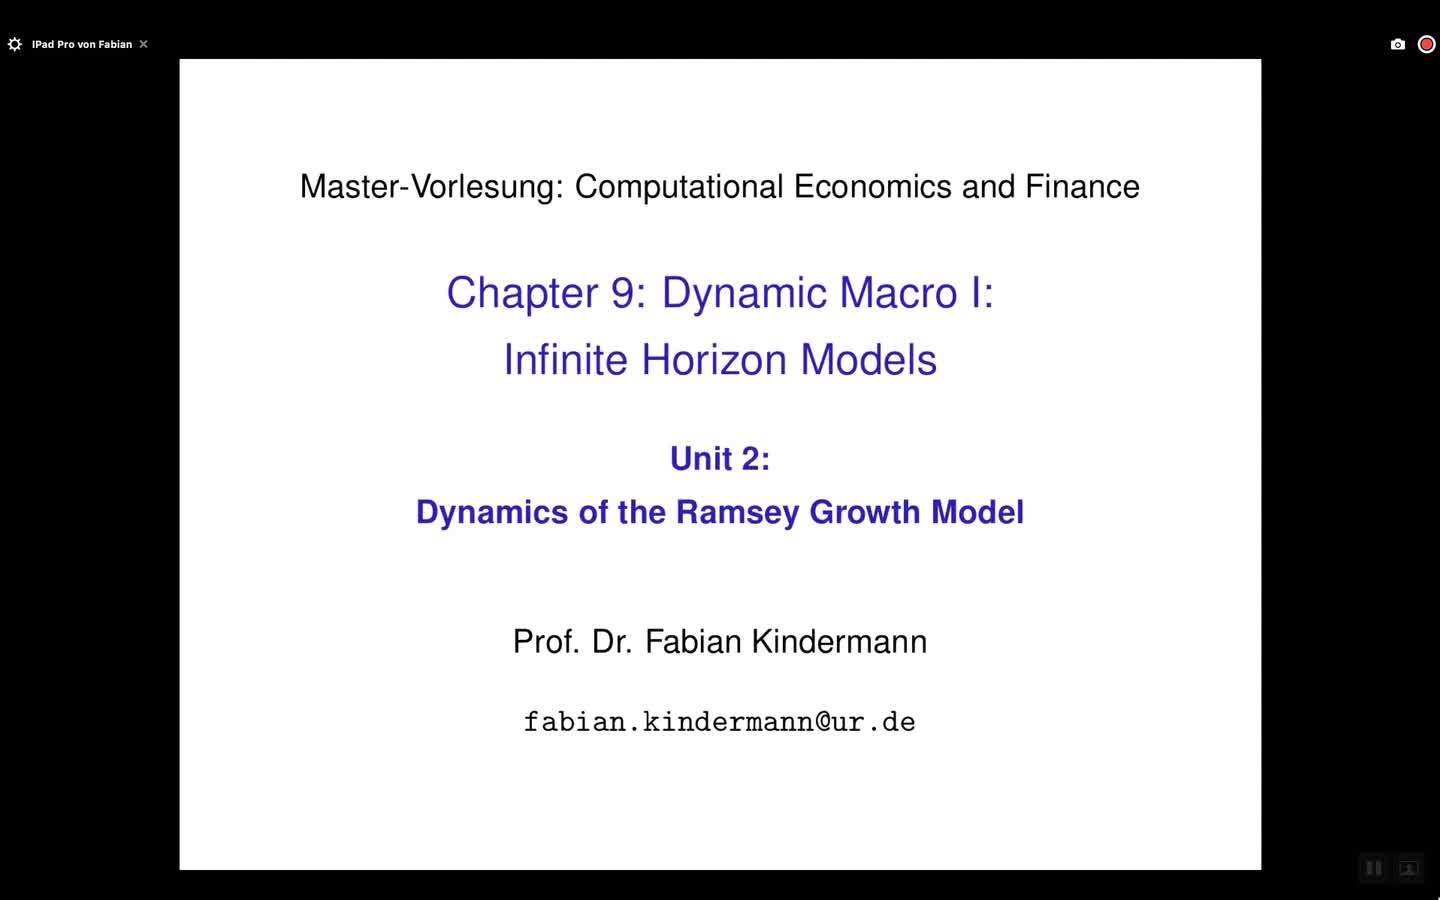 Chapter 9 - Unit 2 - Dynamics of the Ramsey Growth Model